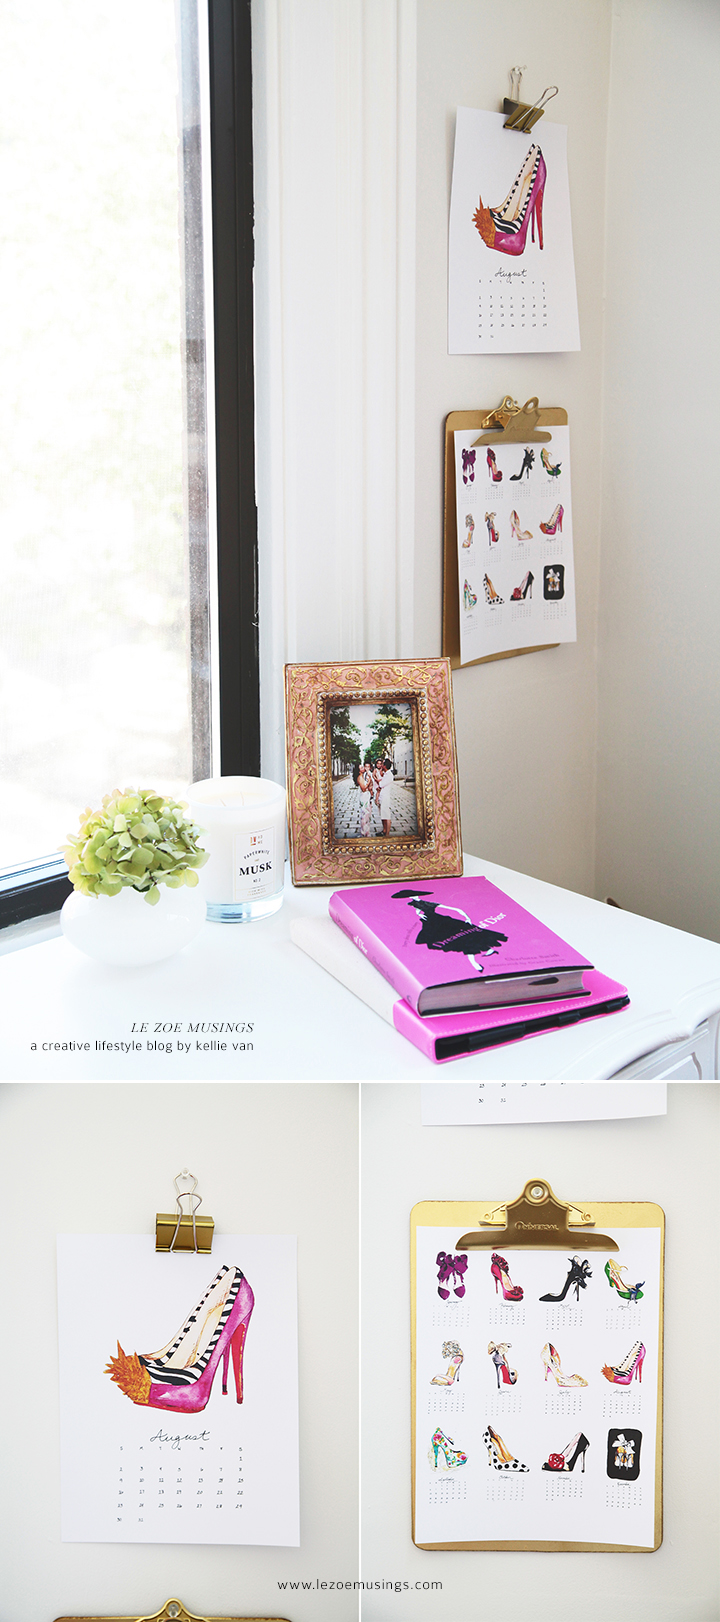 Fancy Shoes in the Home Office by Le Zoe Musings 3